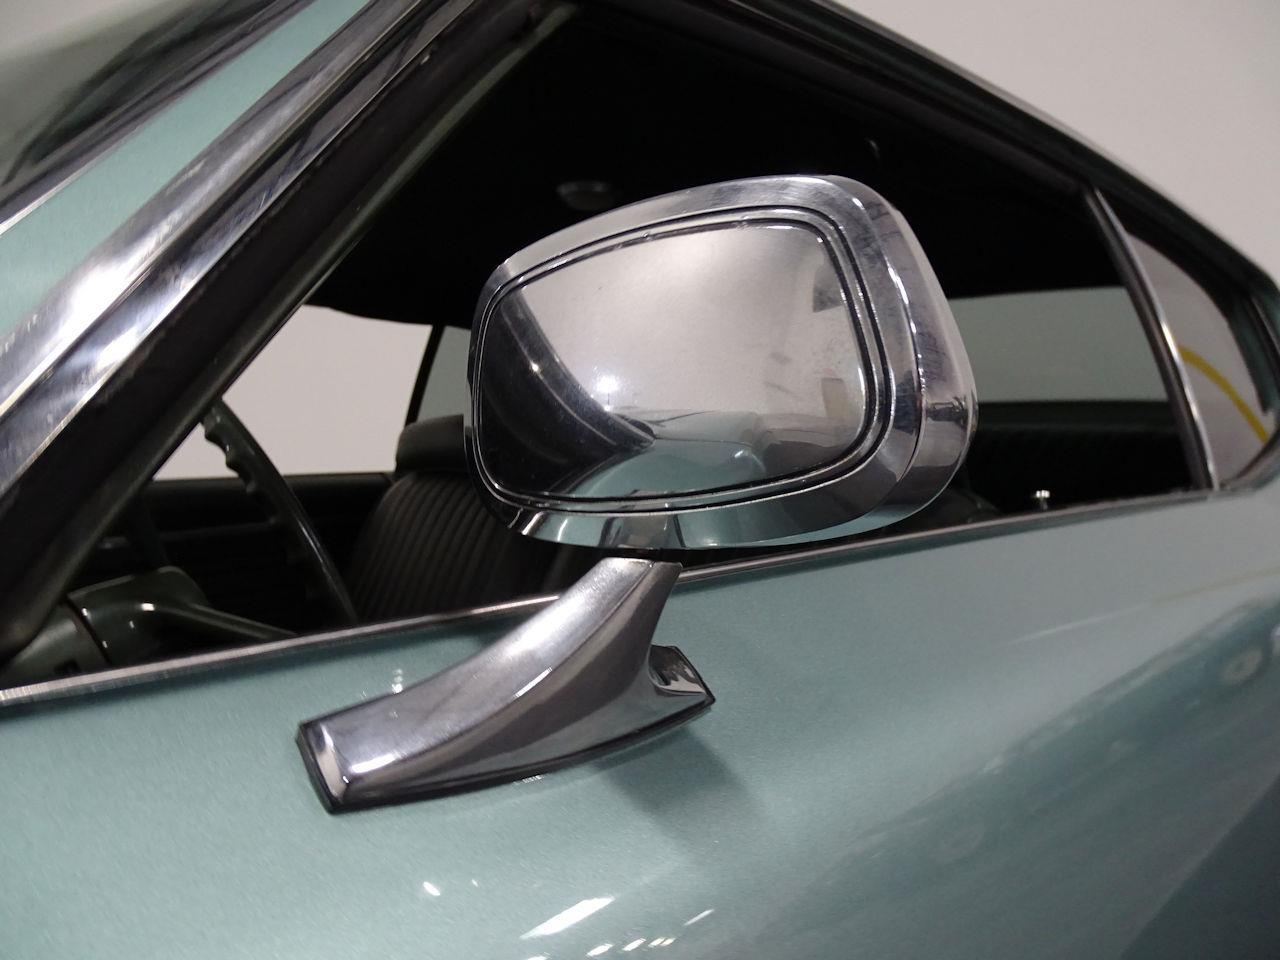 Large Picture of 1971 Buick Skylark located in Texas - $19,995.00 Offered by Gateway Classic Cars - Houston - MBGI